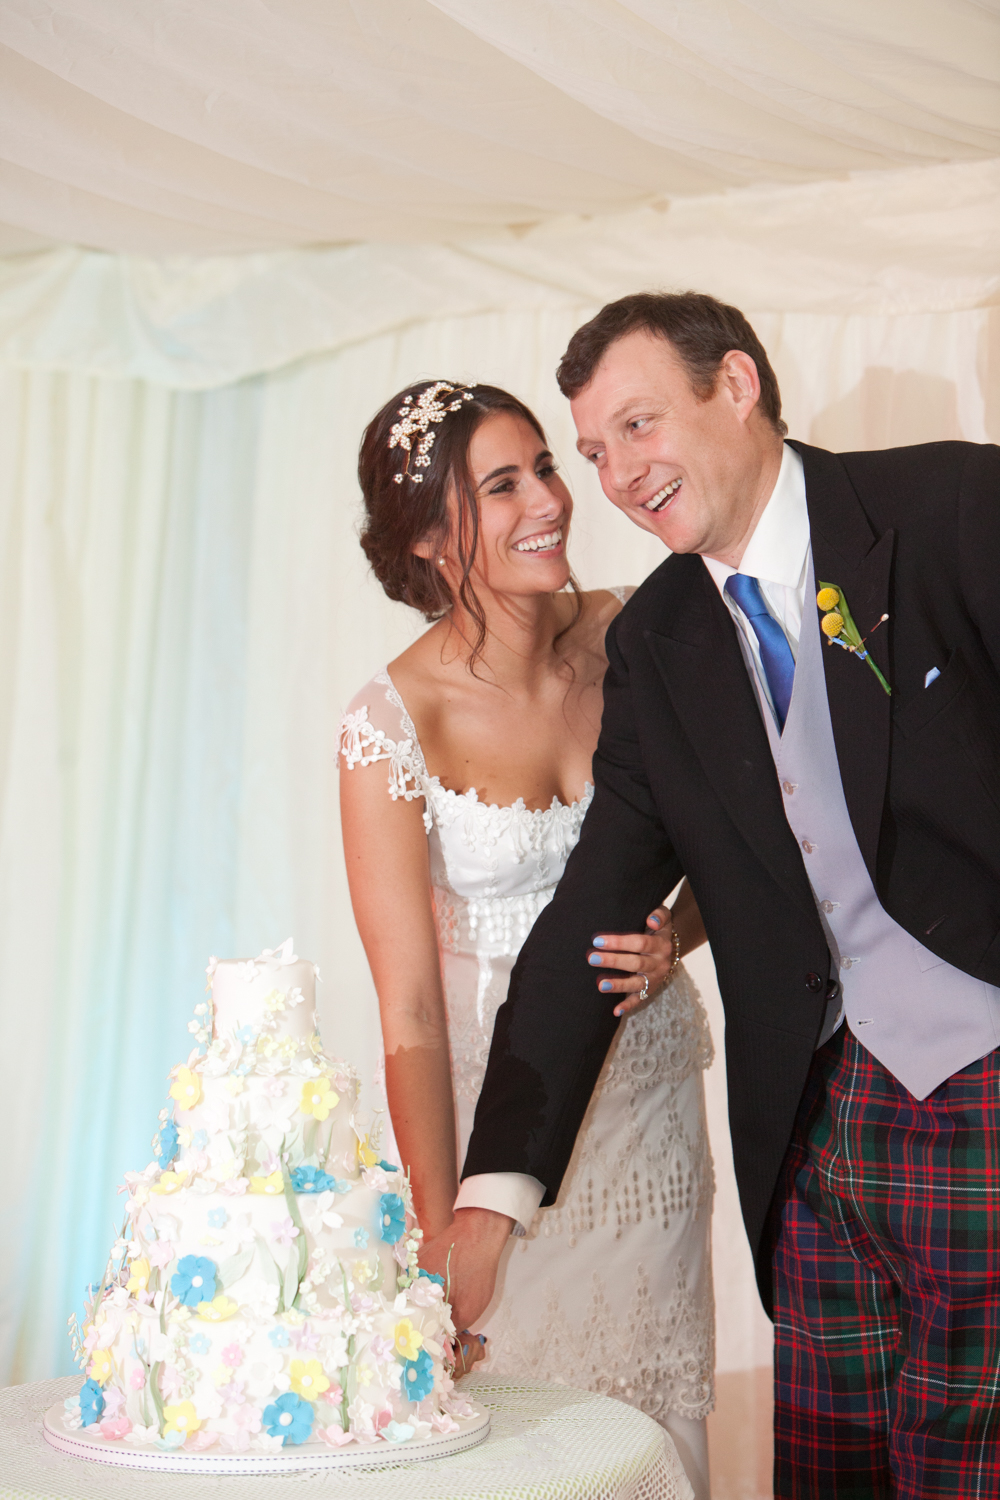 PICTORIAL_BERWICK_WEDDING_FARM_MARQUEE_RAIN_WEATHER_ROTHBURY_MINI_STYLE-6981.jpg